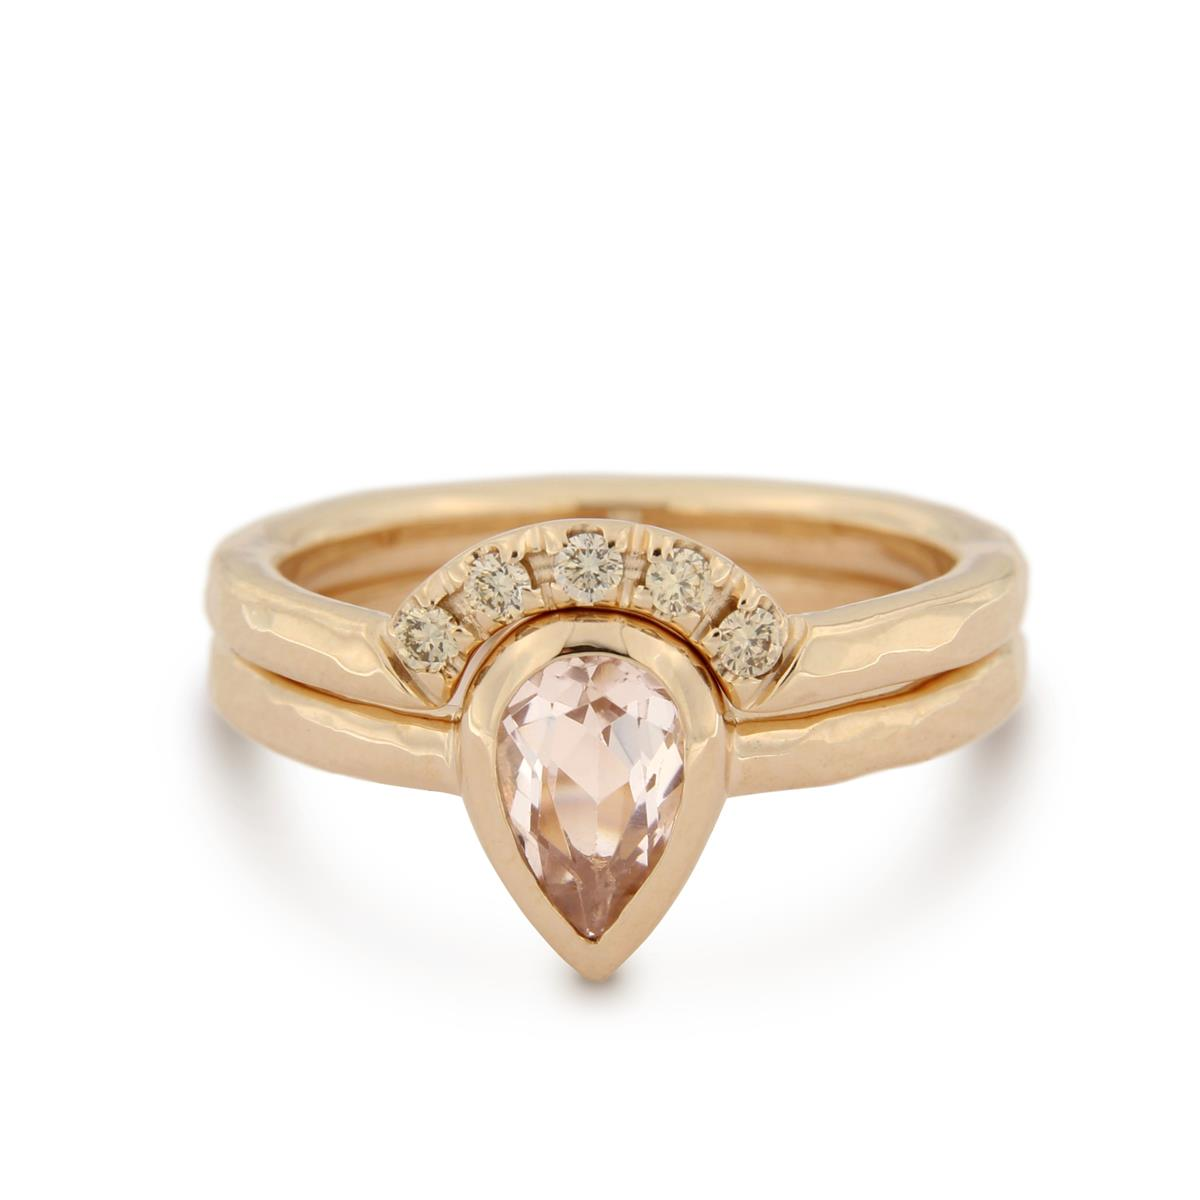 Katie g. Jewellery - Morganit Stacking Set_Morganit Ring (unterer Ring) 14kt. Rosé Gold mit Morganit Stein_Slot RIng (oberer Ring) 14kt. Rosé Gold mit 5 Brillianten_Set EUR 3.100